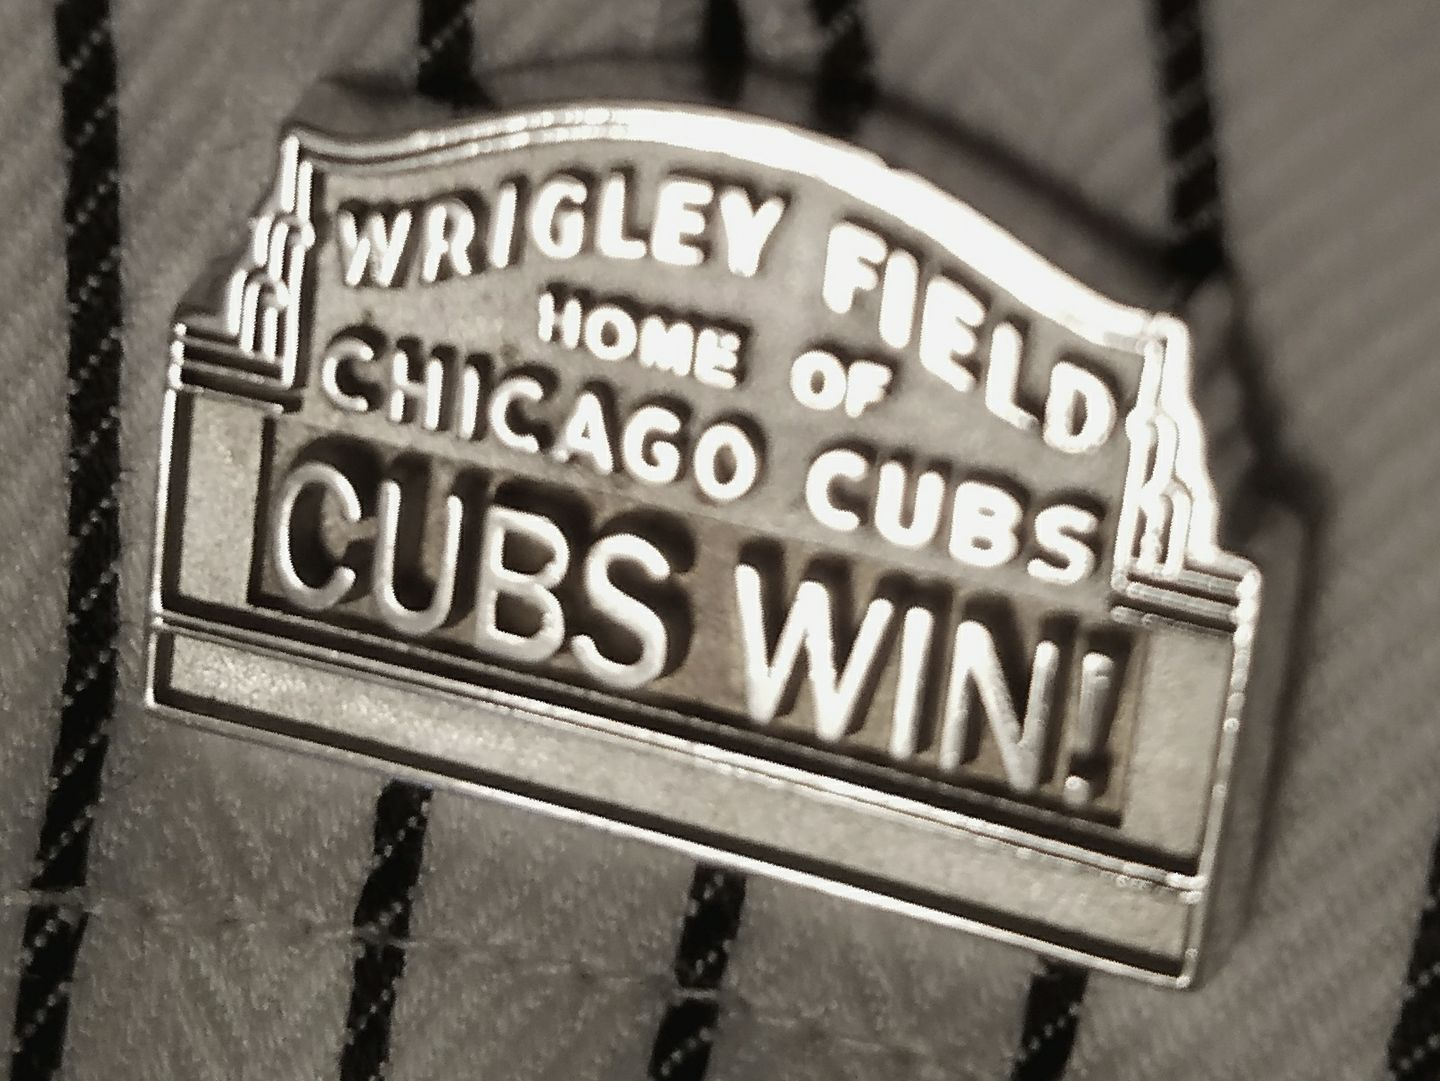 Pin by Bryon Holz on Cufflink Collection Wrigley field